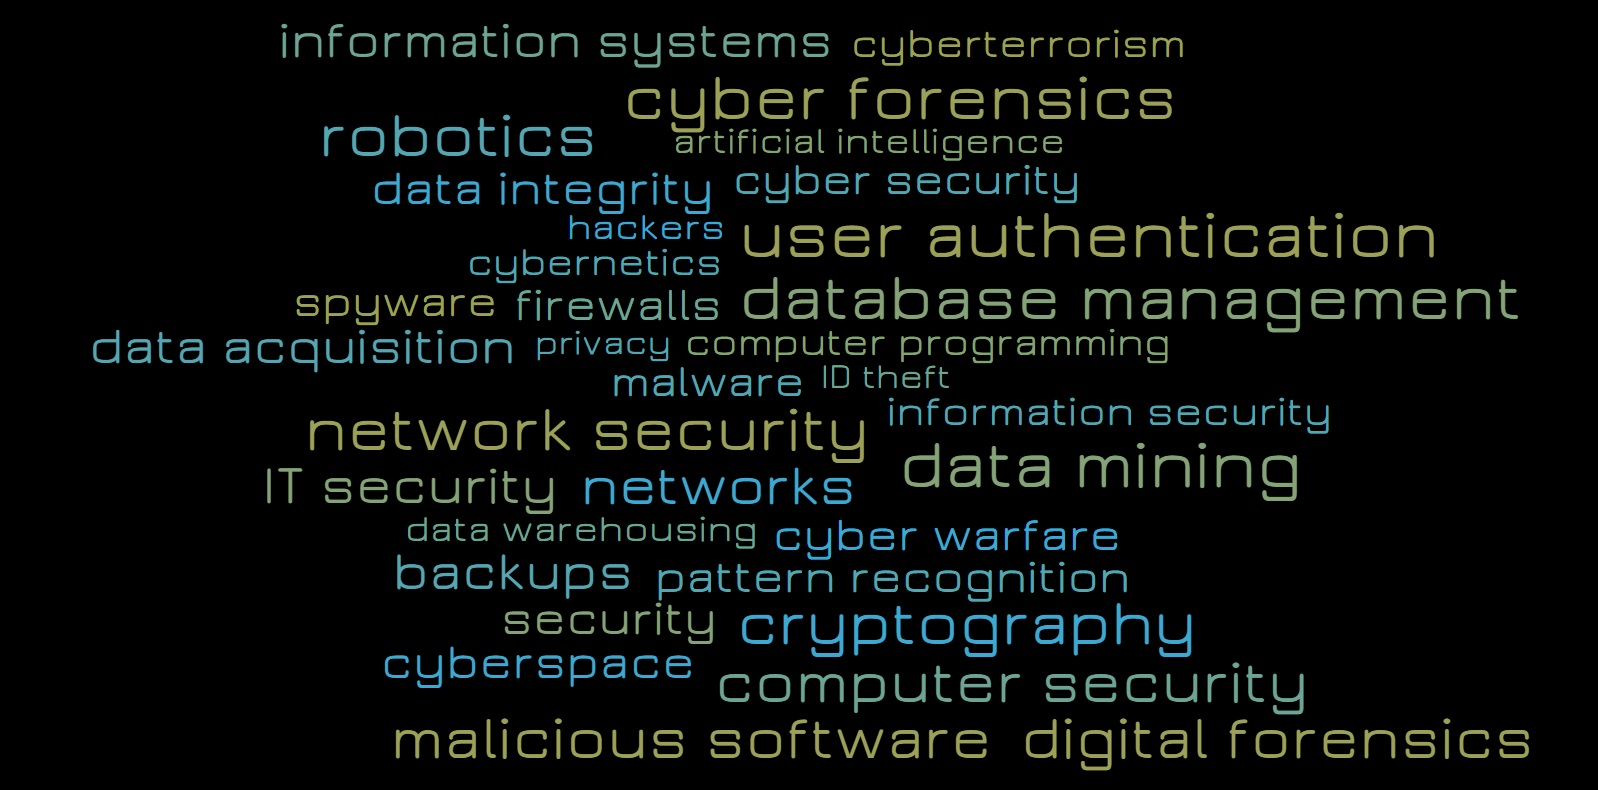 Word Cloud of cyber security terms